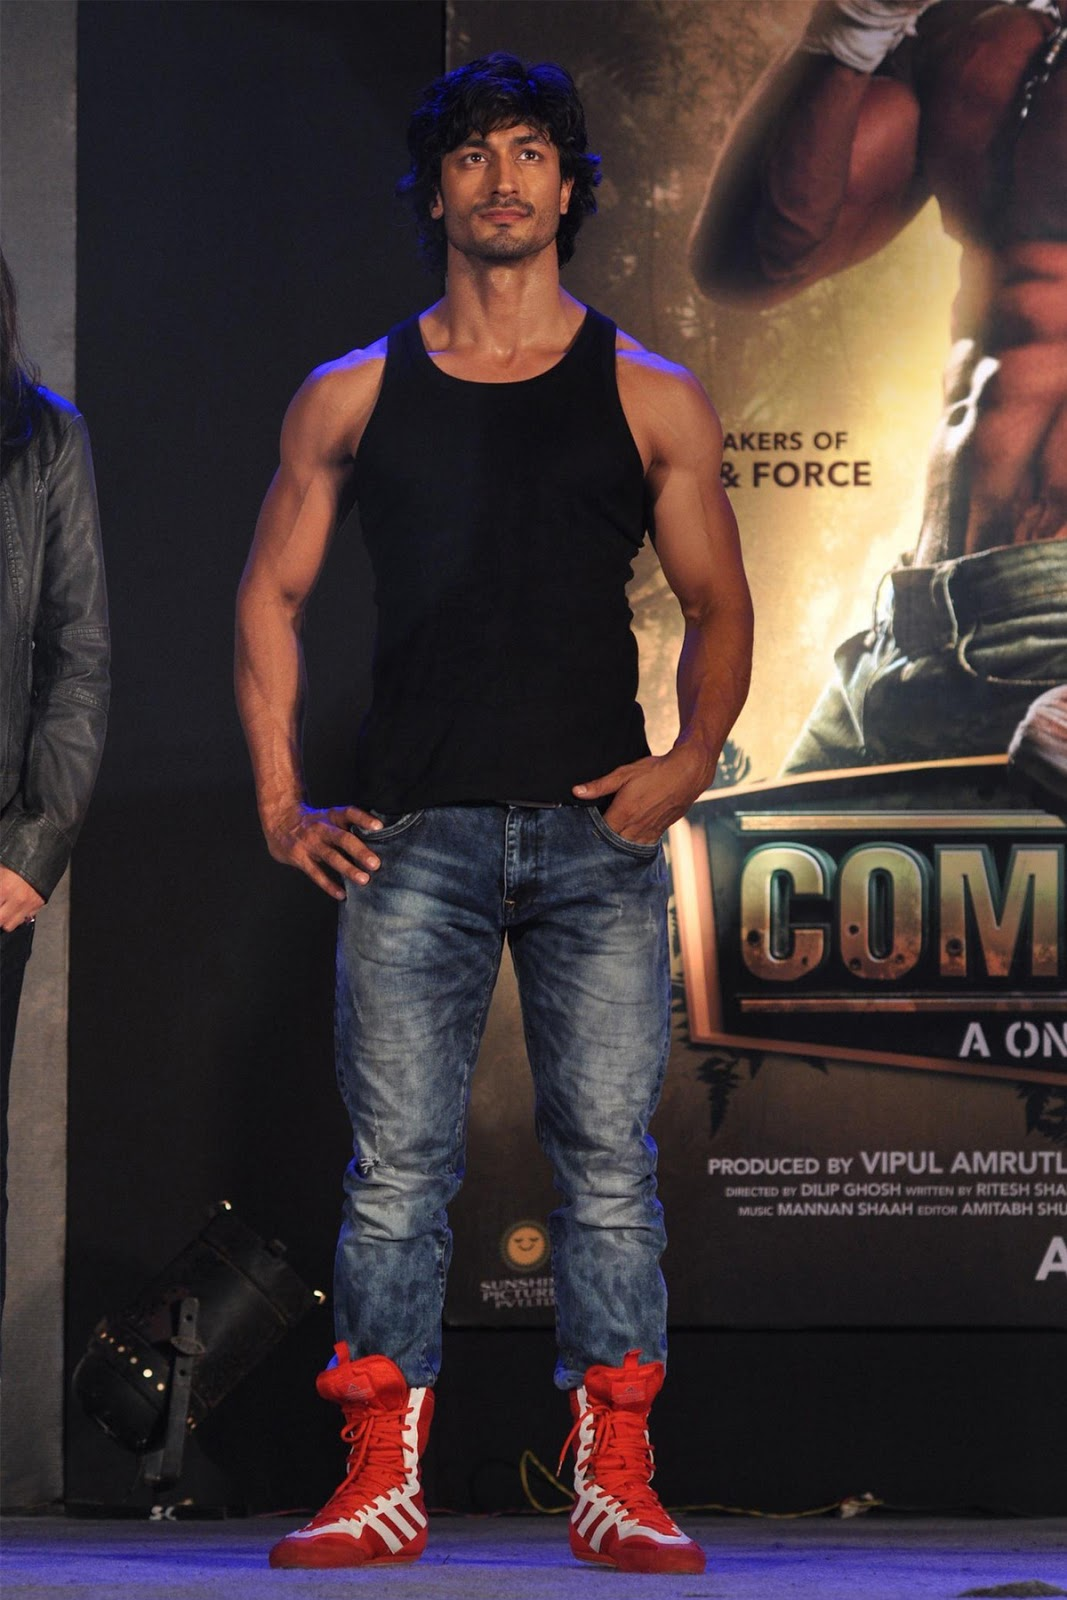 Vidyut jamwal in commando one man army